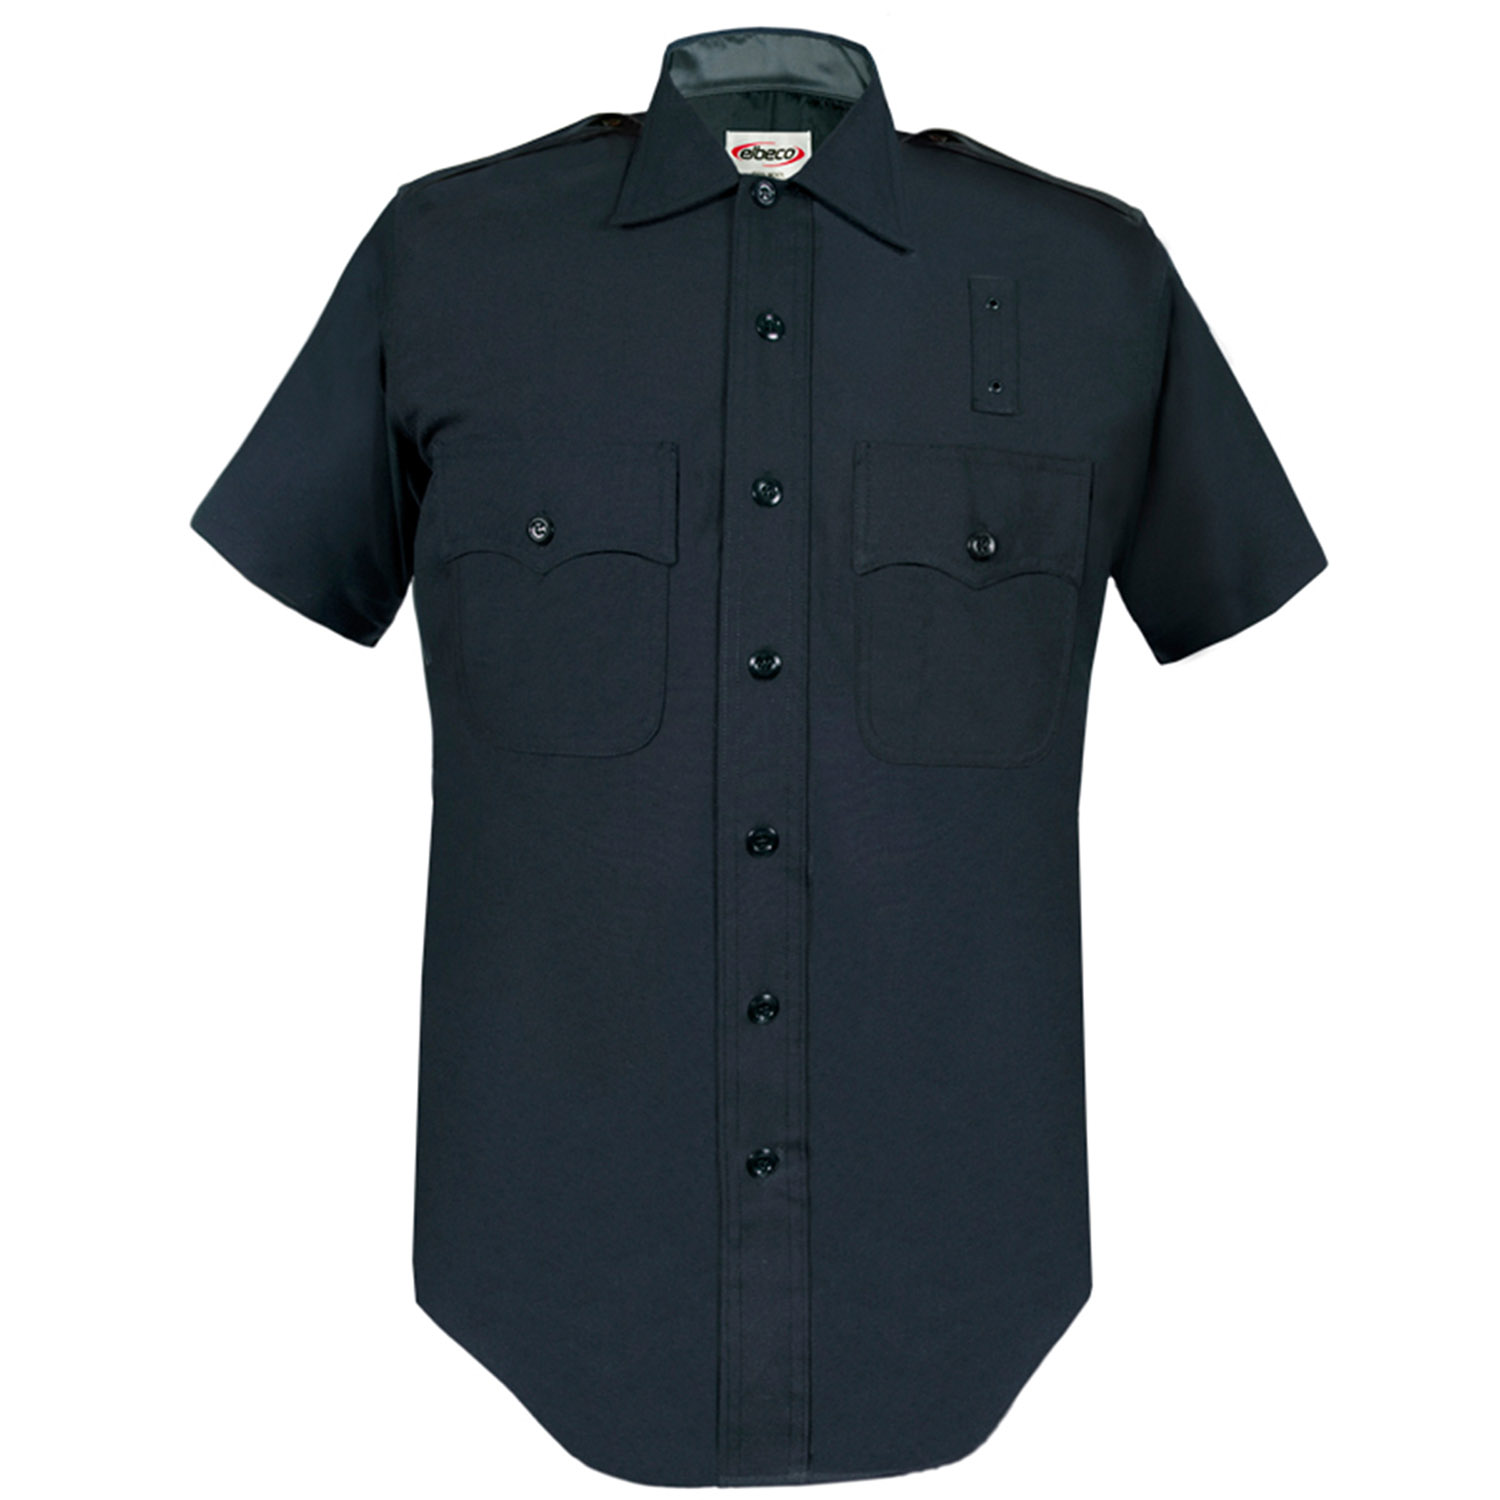 Elbeco LAPD Short Sleeve Shirt 100% Wool